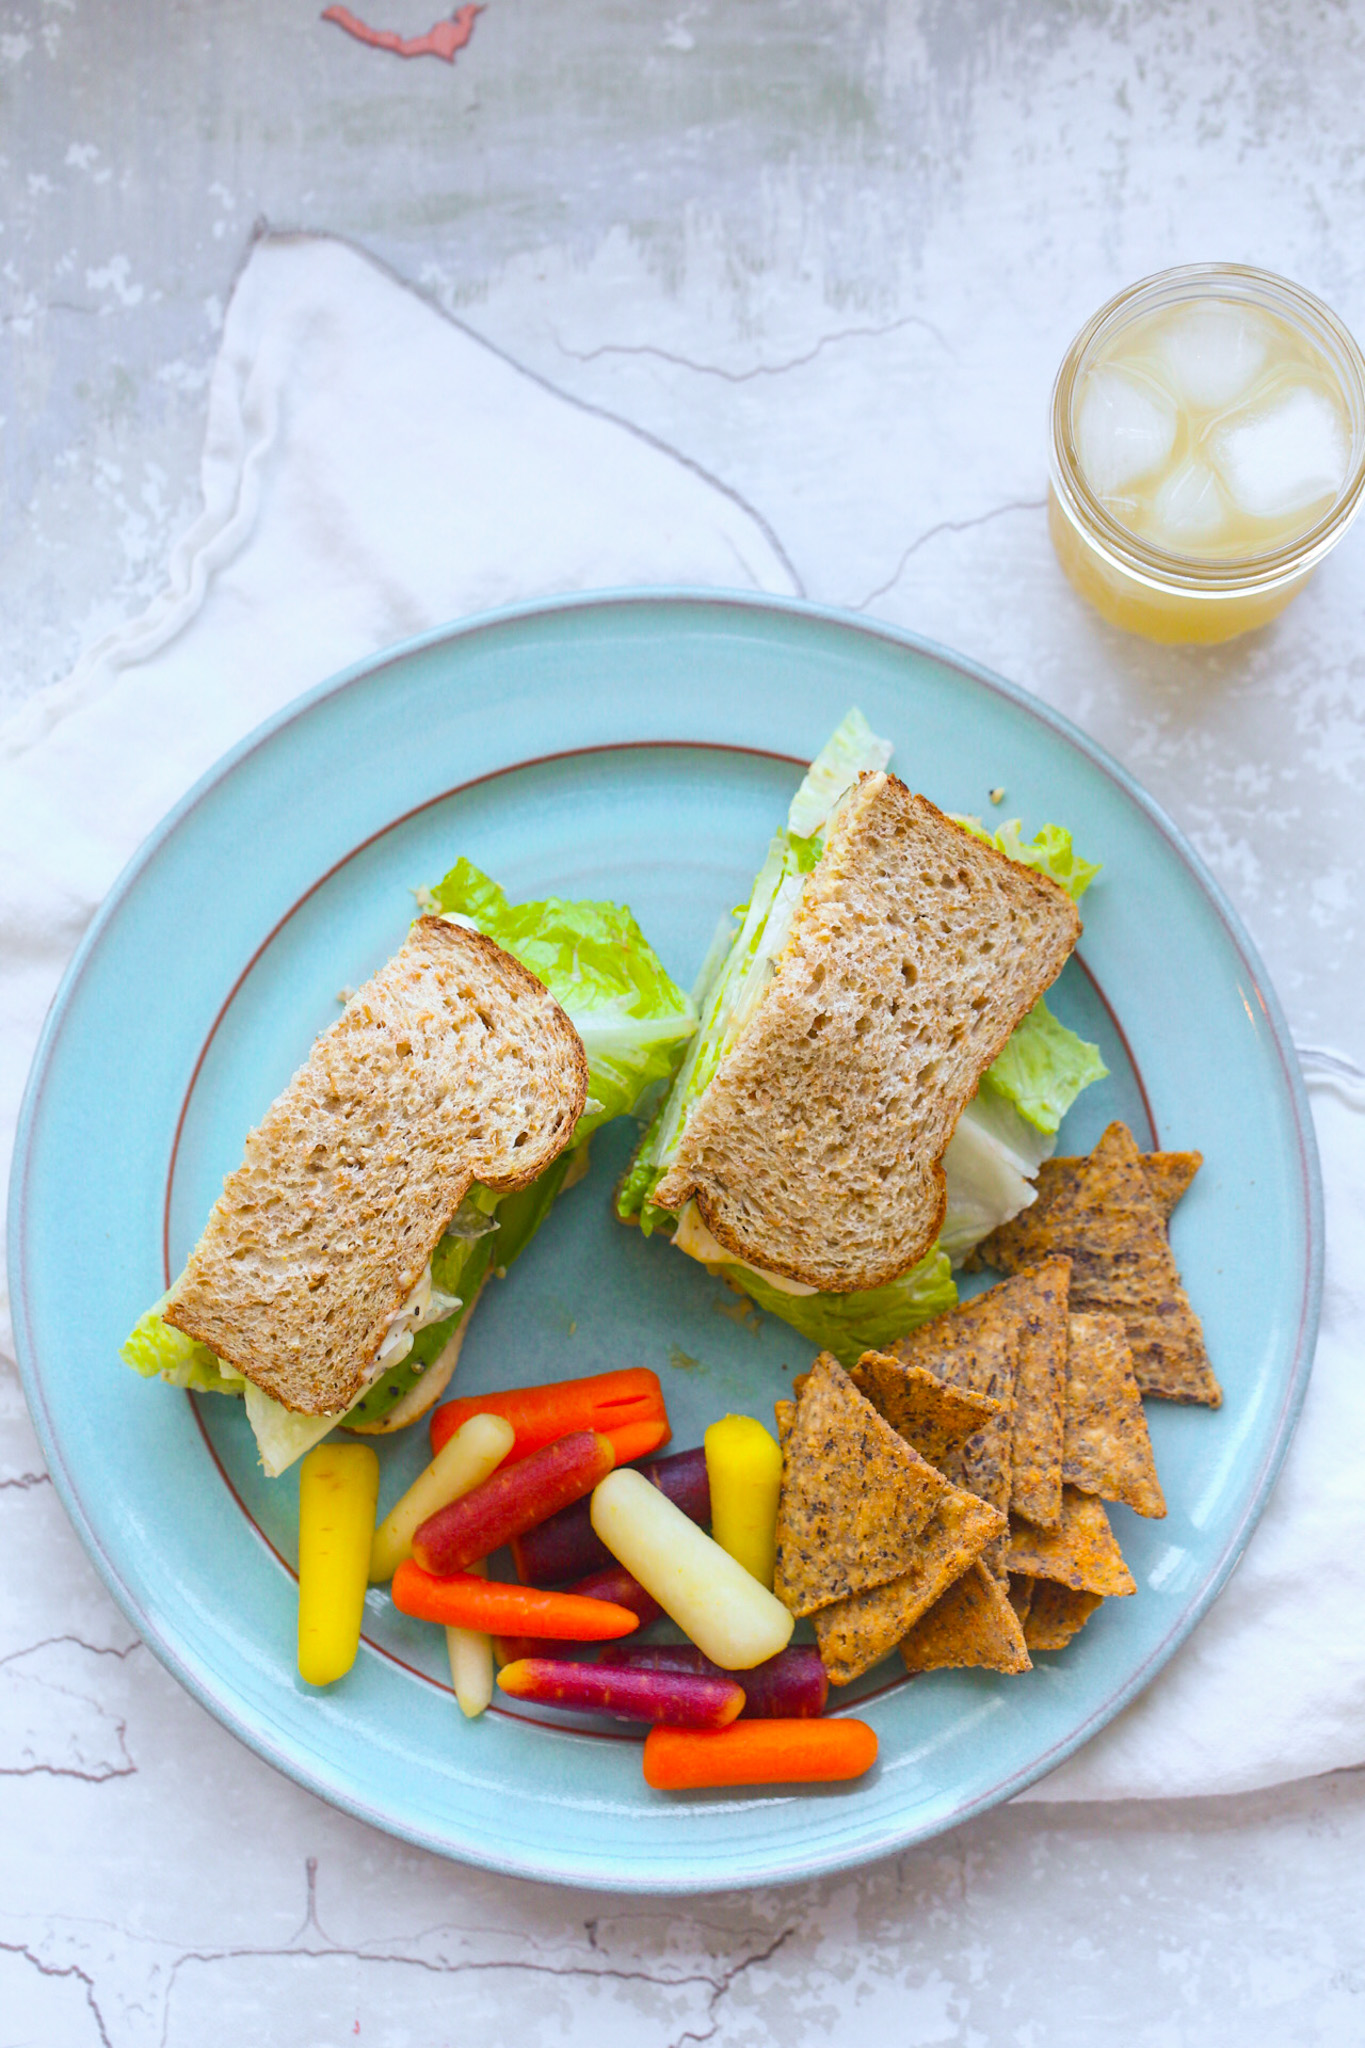 lunch plate with avocado hummus sandwich and carrots